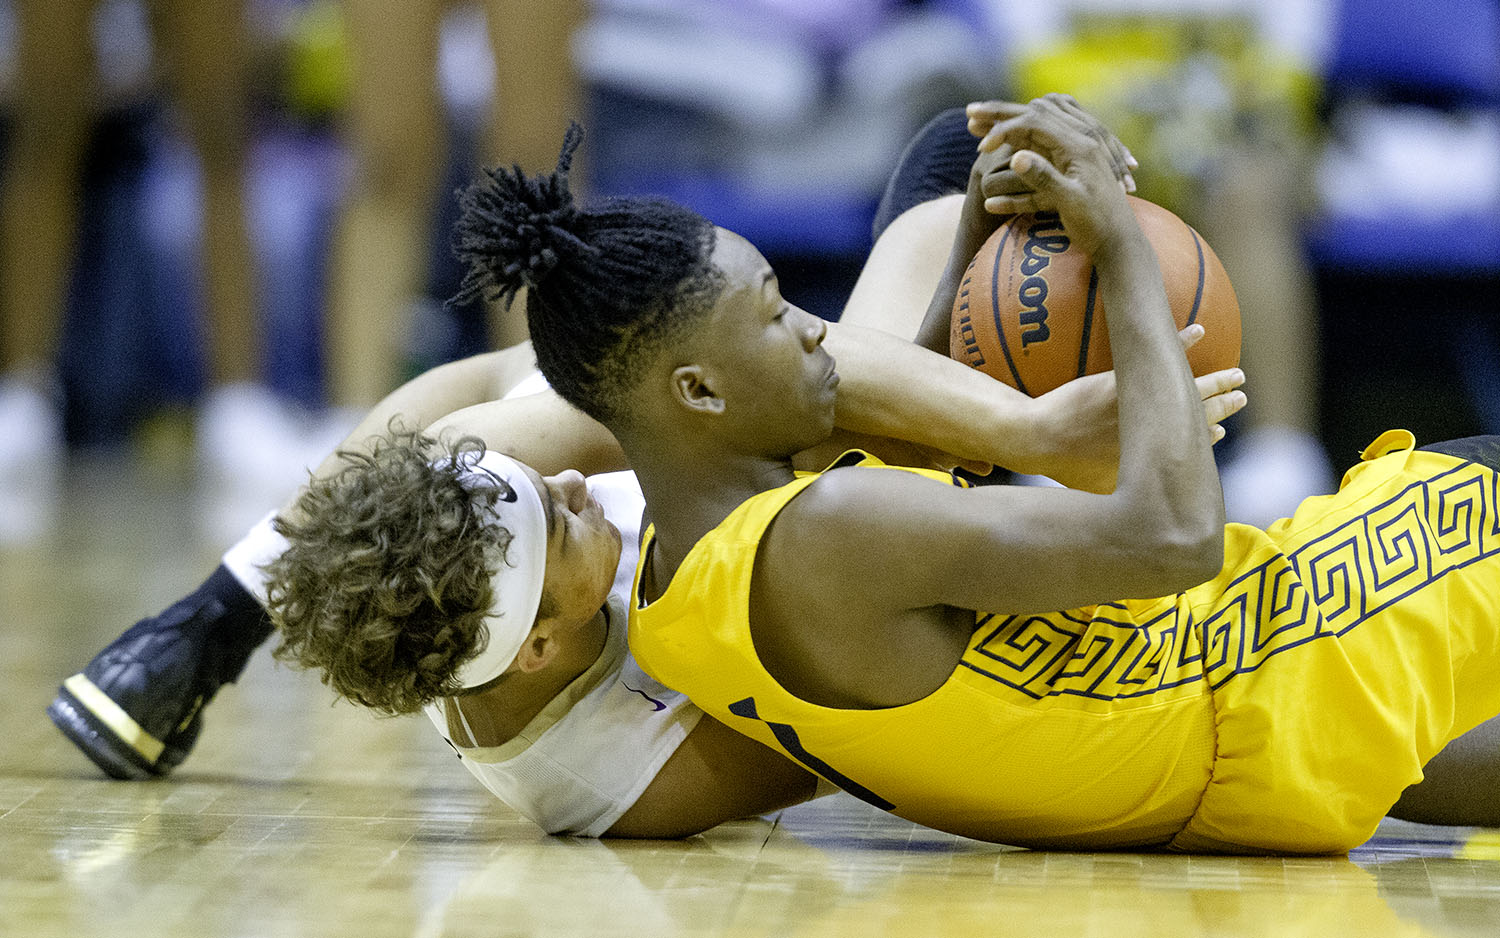 Sacred Heart-Griffin's Isaiah Thompson and Southeast's Stepheon Sims fight for control of a loose ball during the Boys City Tournament at the Bank of Springfield Center Friday, Jan. 18, 2019.  [Ted Schurter/The State Journal-Register]